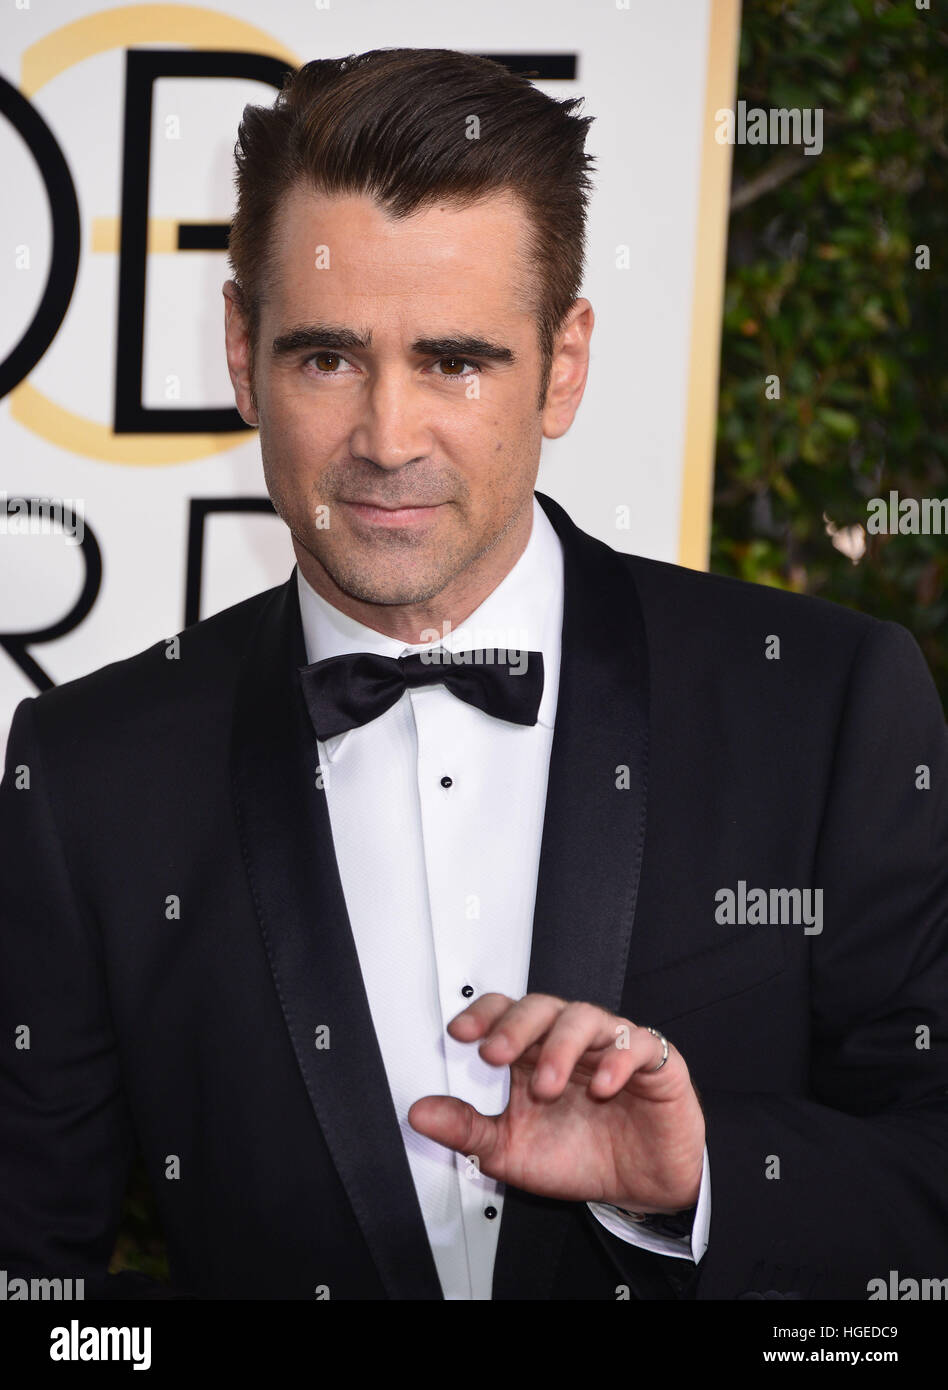 Los Angeles, California, USA. 08th Jan, 2017. Colin Farrell 099 arriving at the 74th Annual Golden Globe Awards - Stock Image